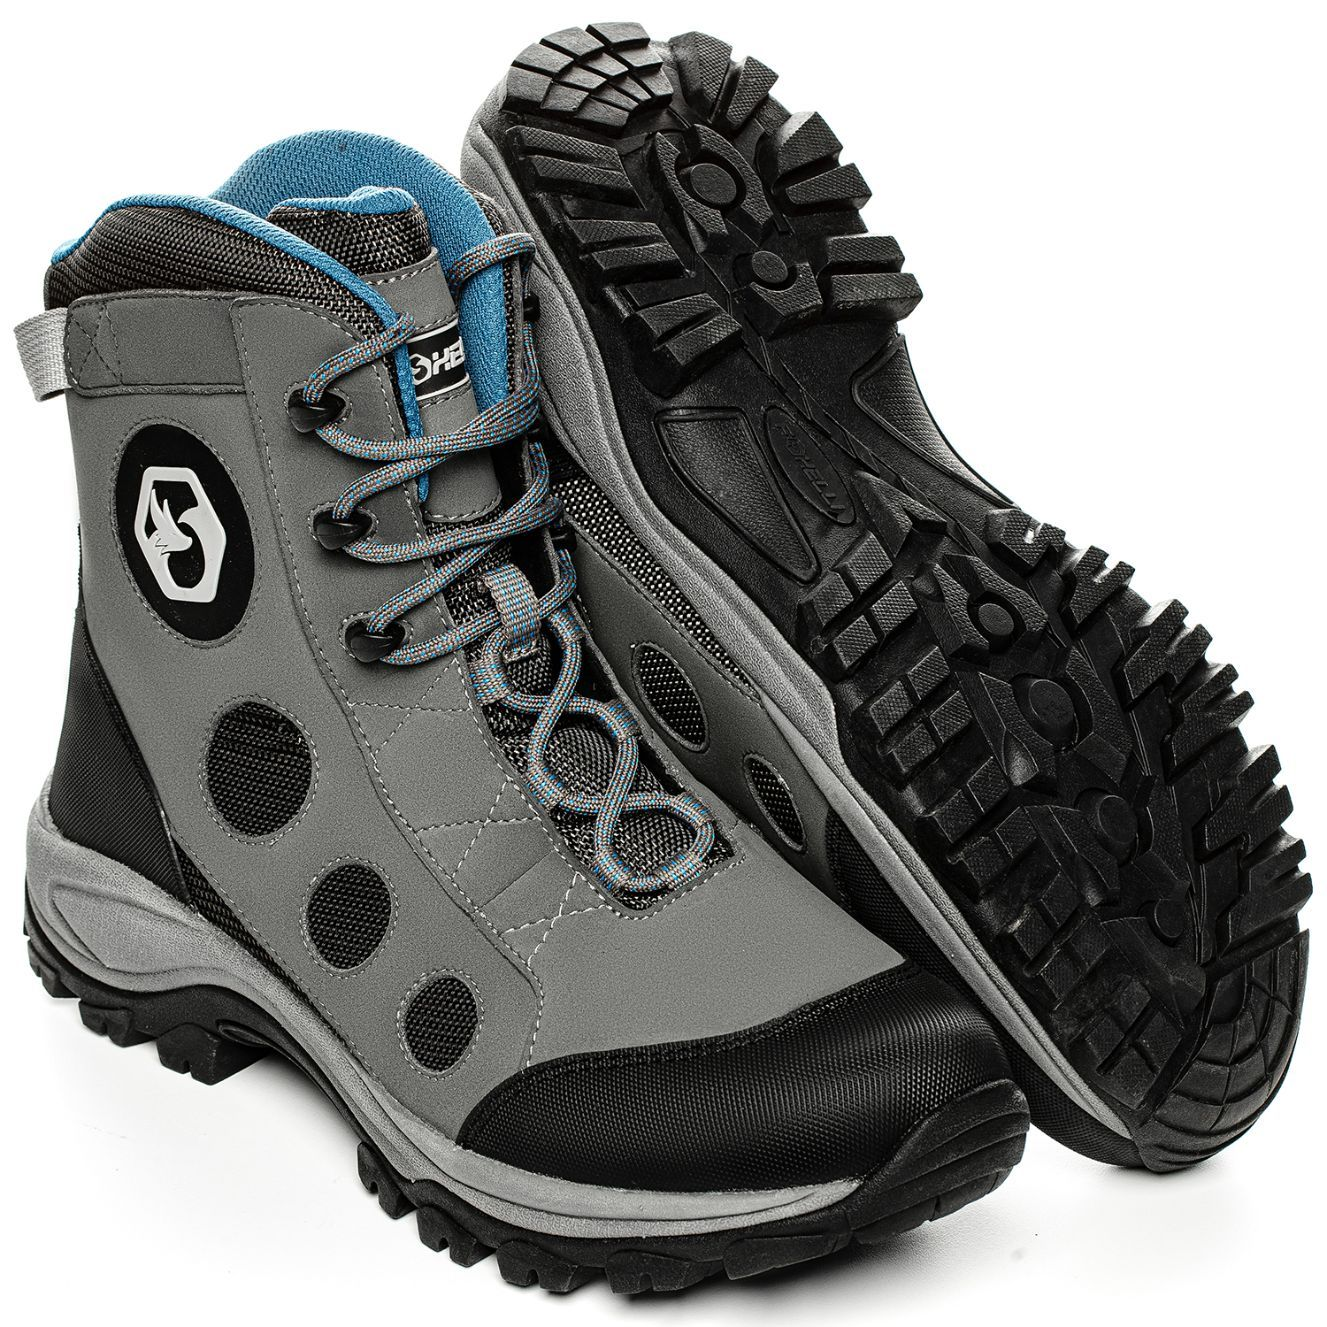 Foxelli Ultra light Wading Boots for fly fishing